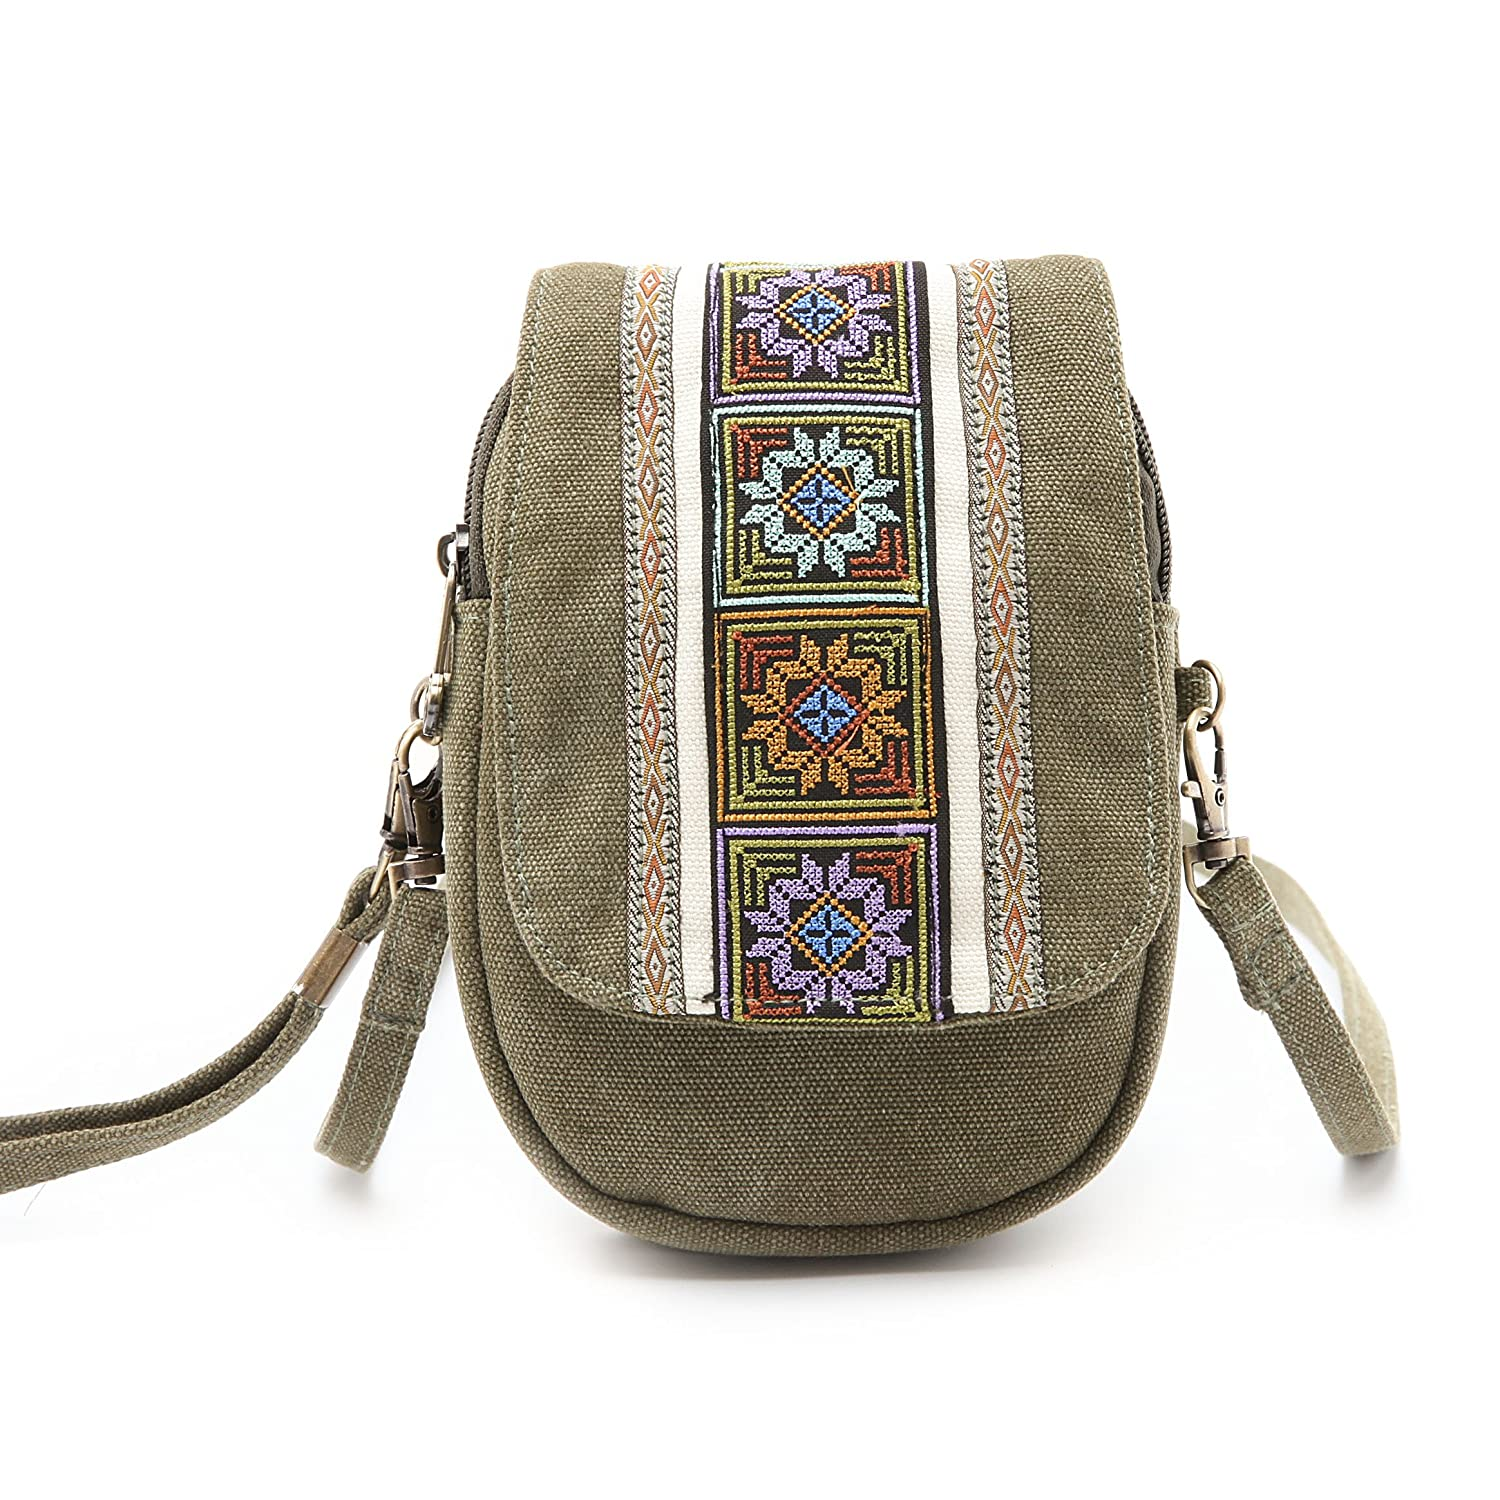 1a7448561c02 Goodhan Embroidery Canvas Crossbody Bag Cell phone Pouch Coin Purse for  Women Girls  Handbags  Amazon.com